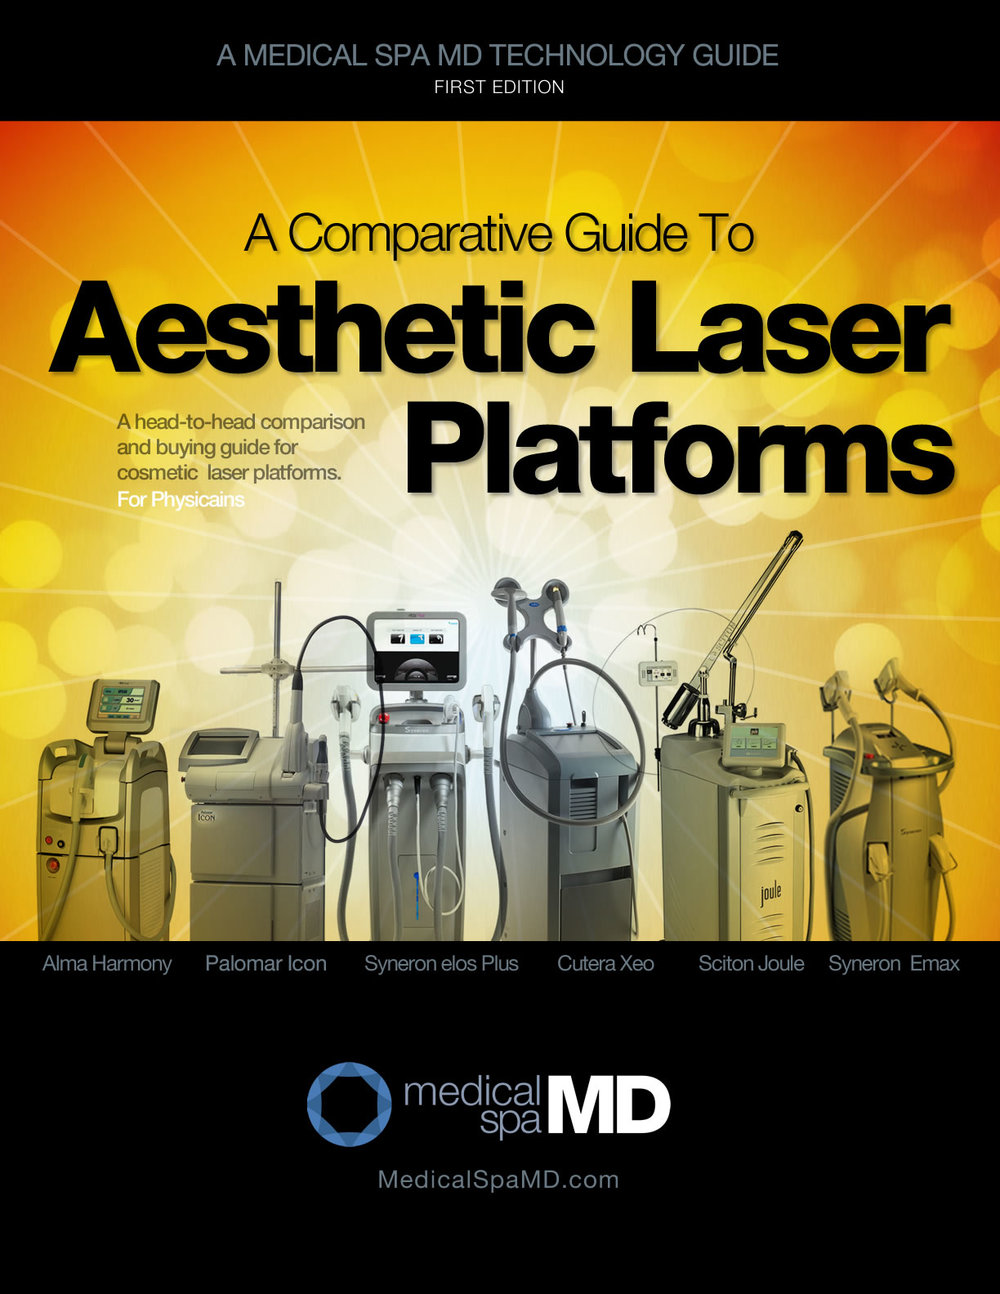 Aesthetic Laser Platforms Reviews & Comparisions